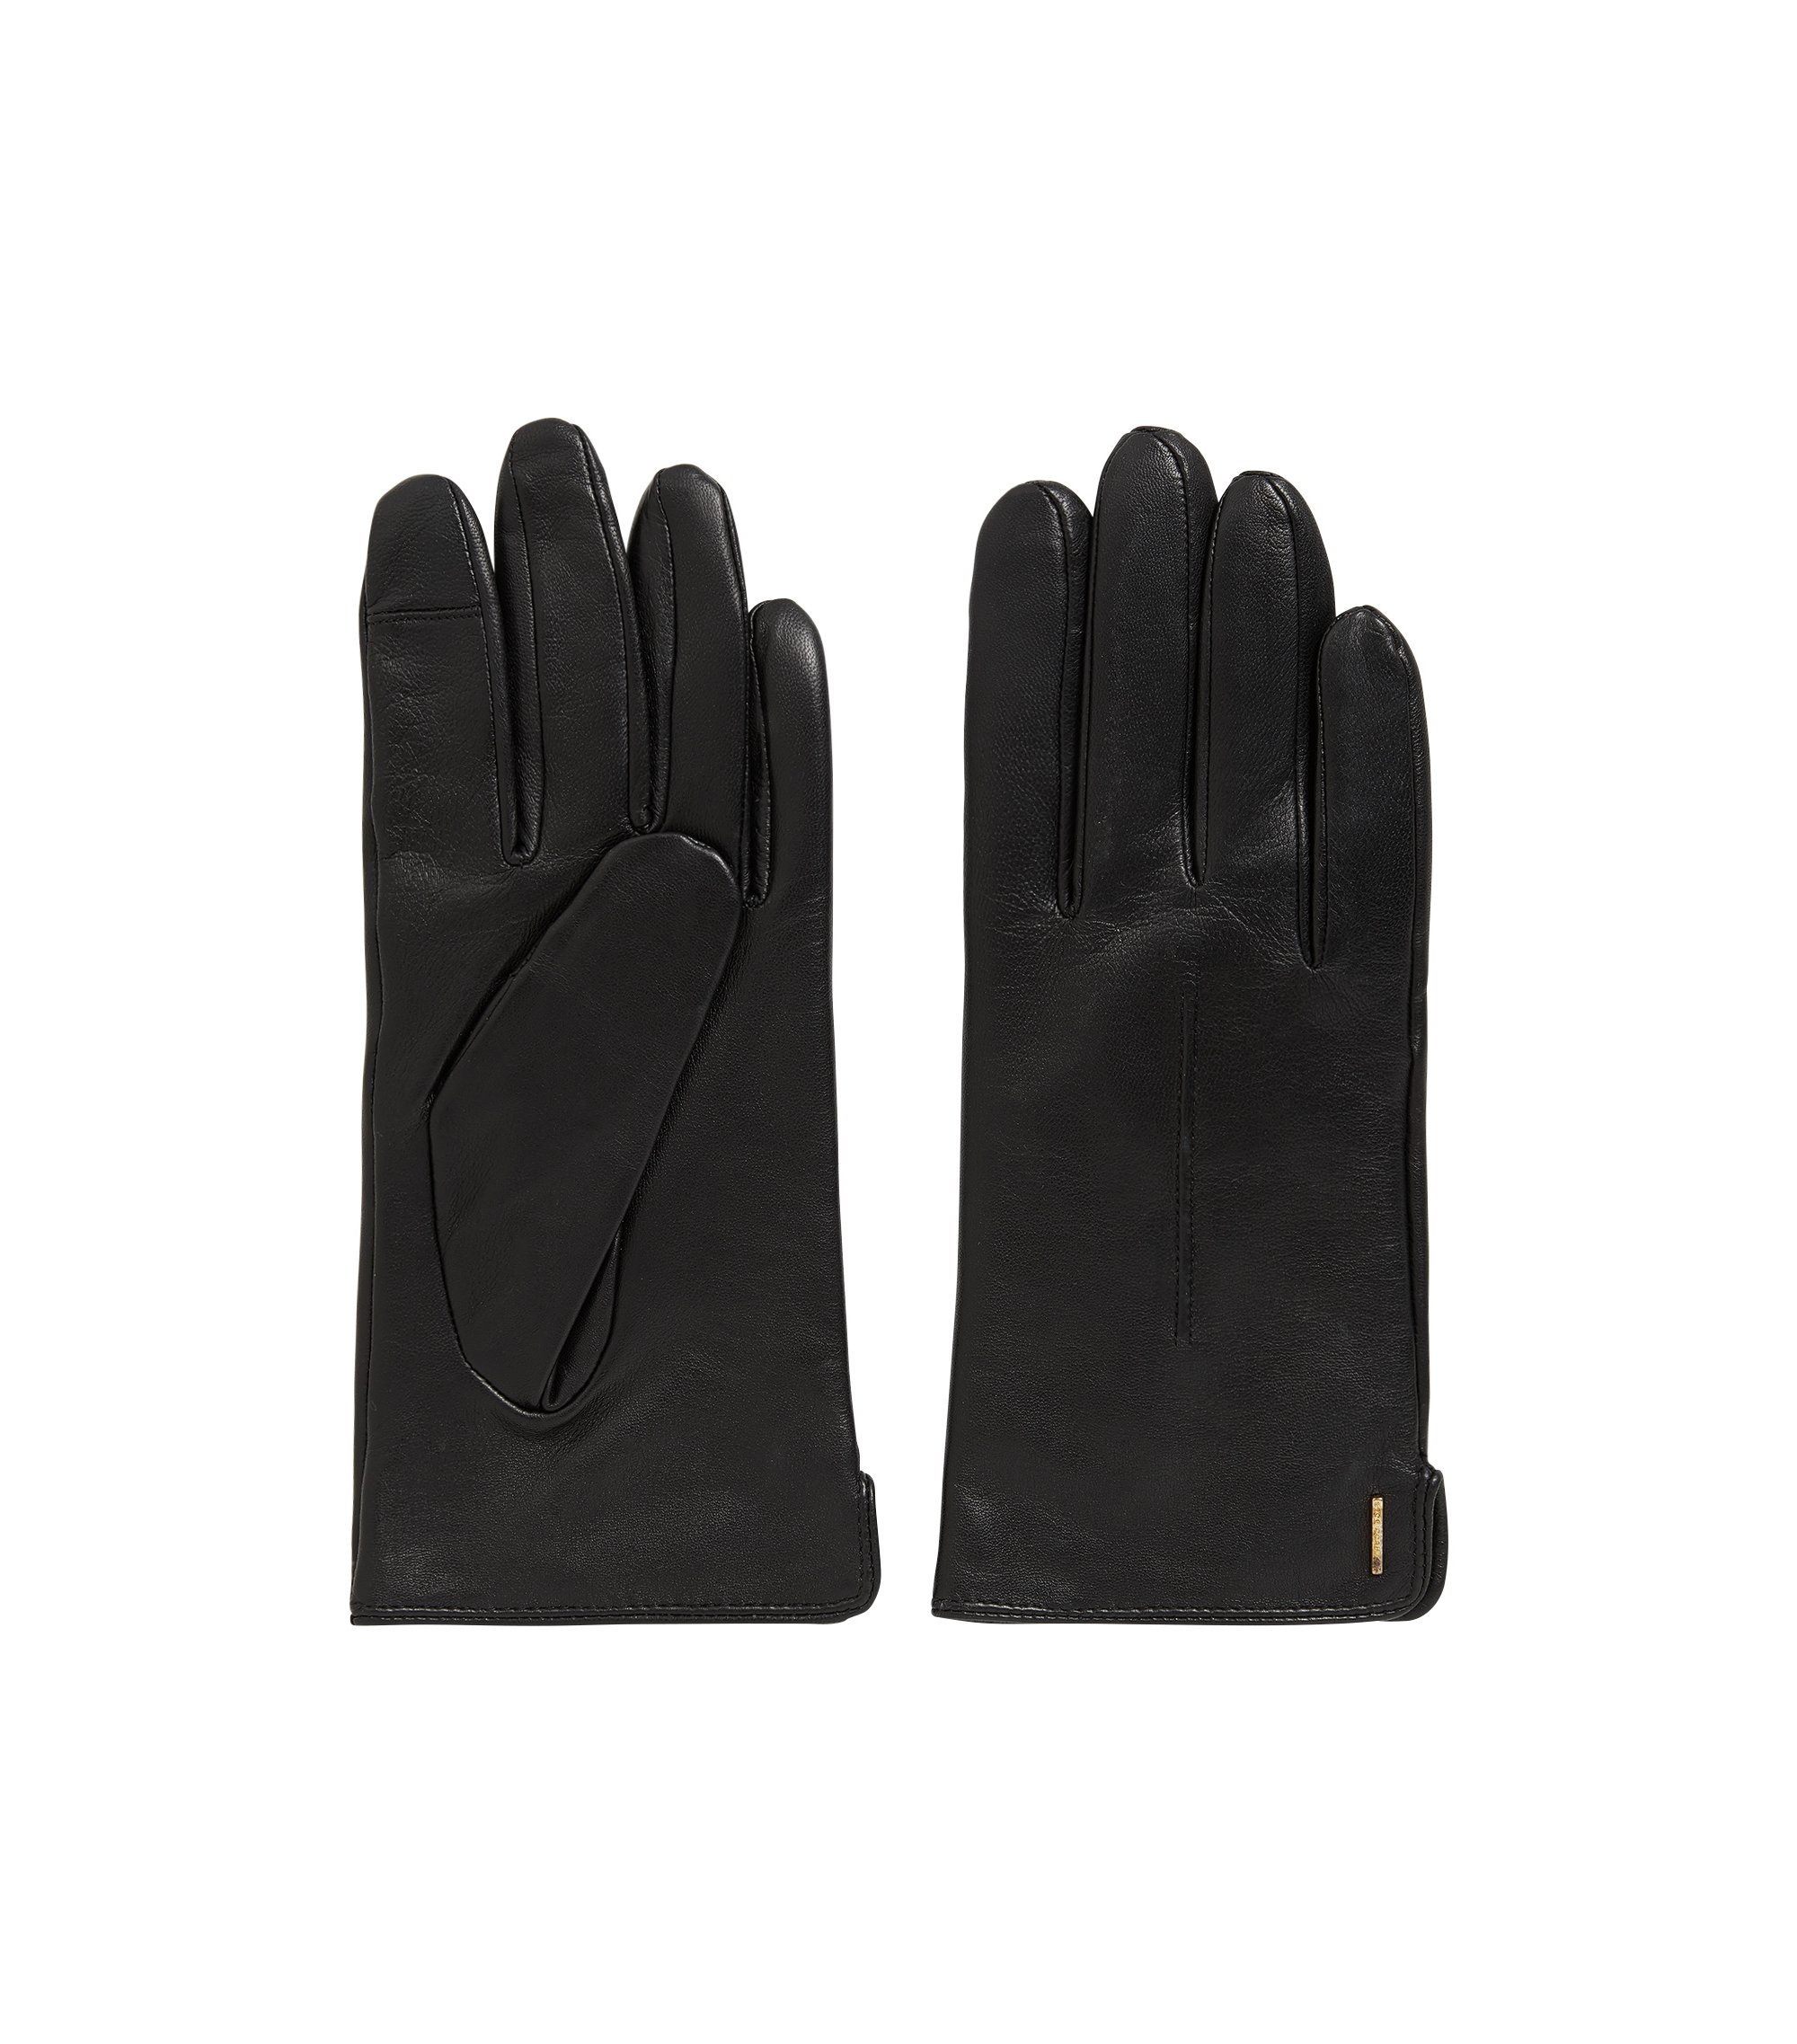 Leather gloves with touchscreen function, Black